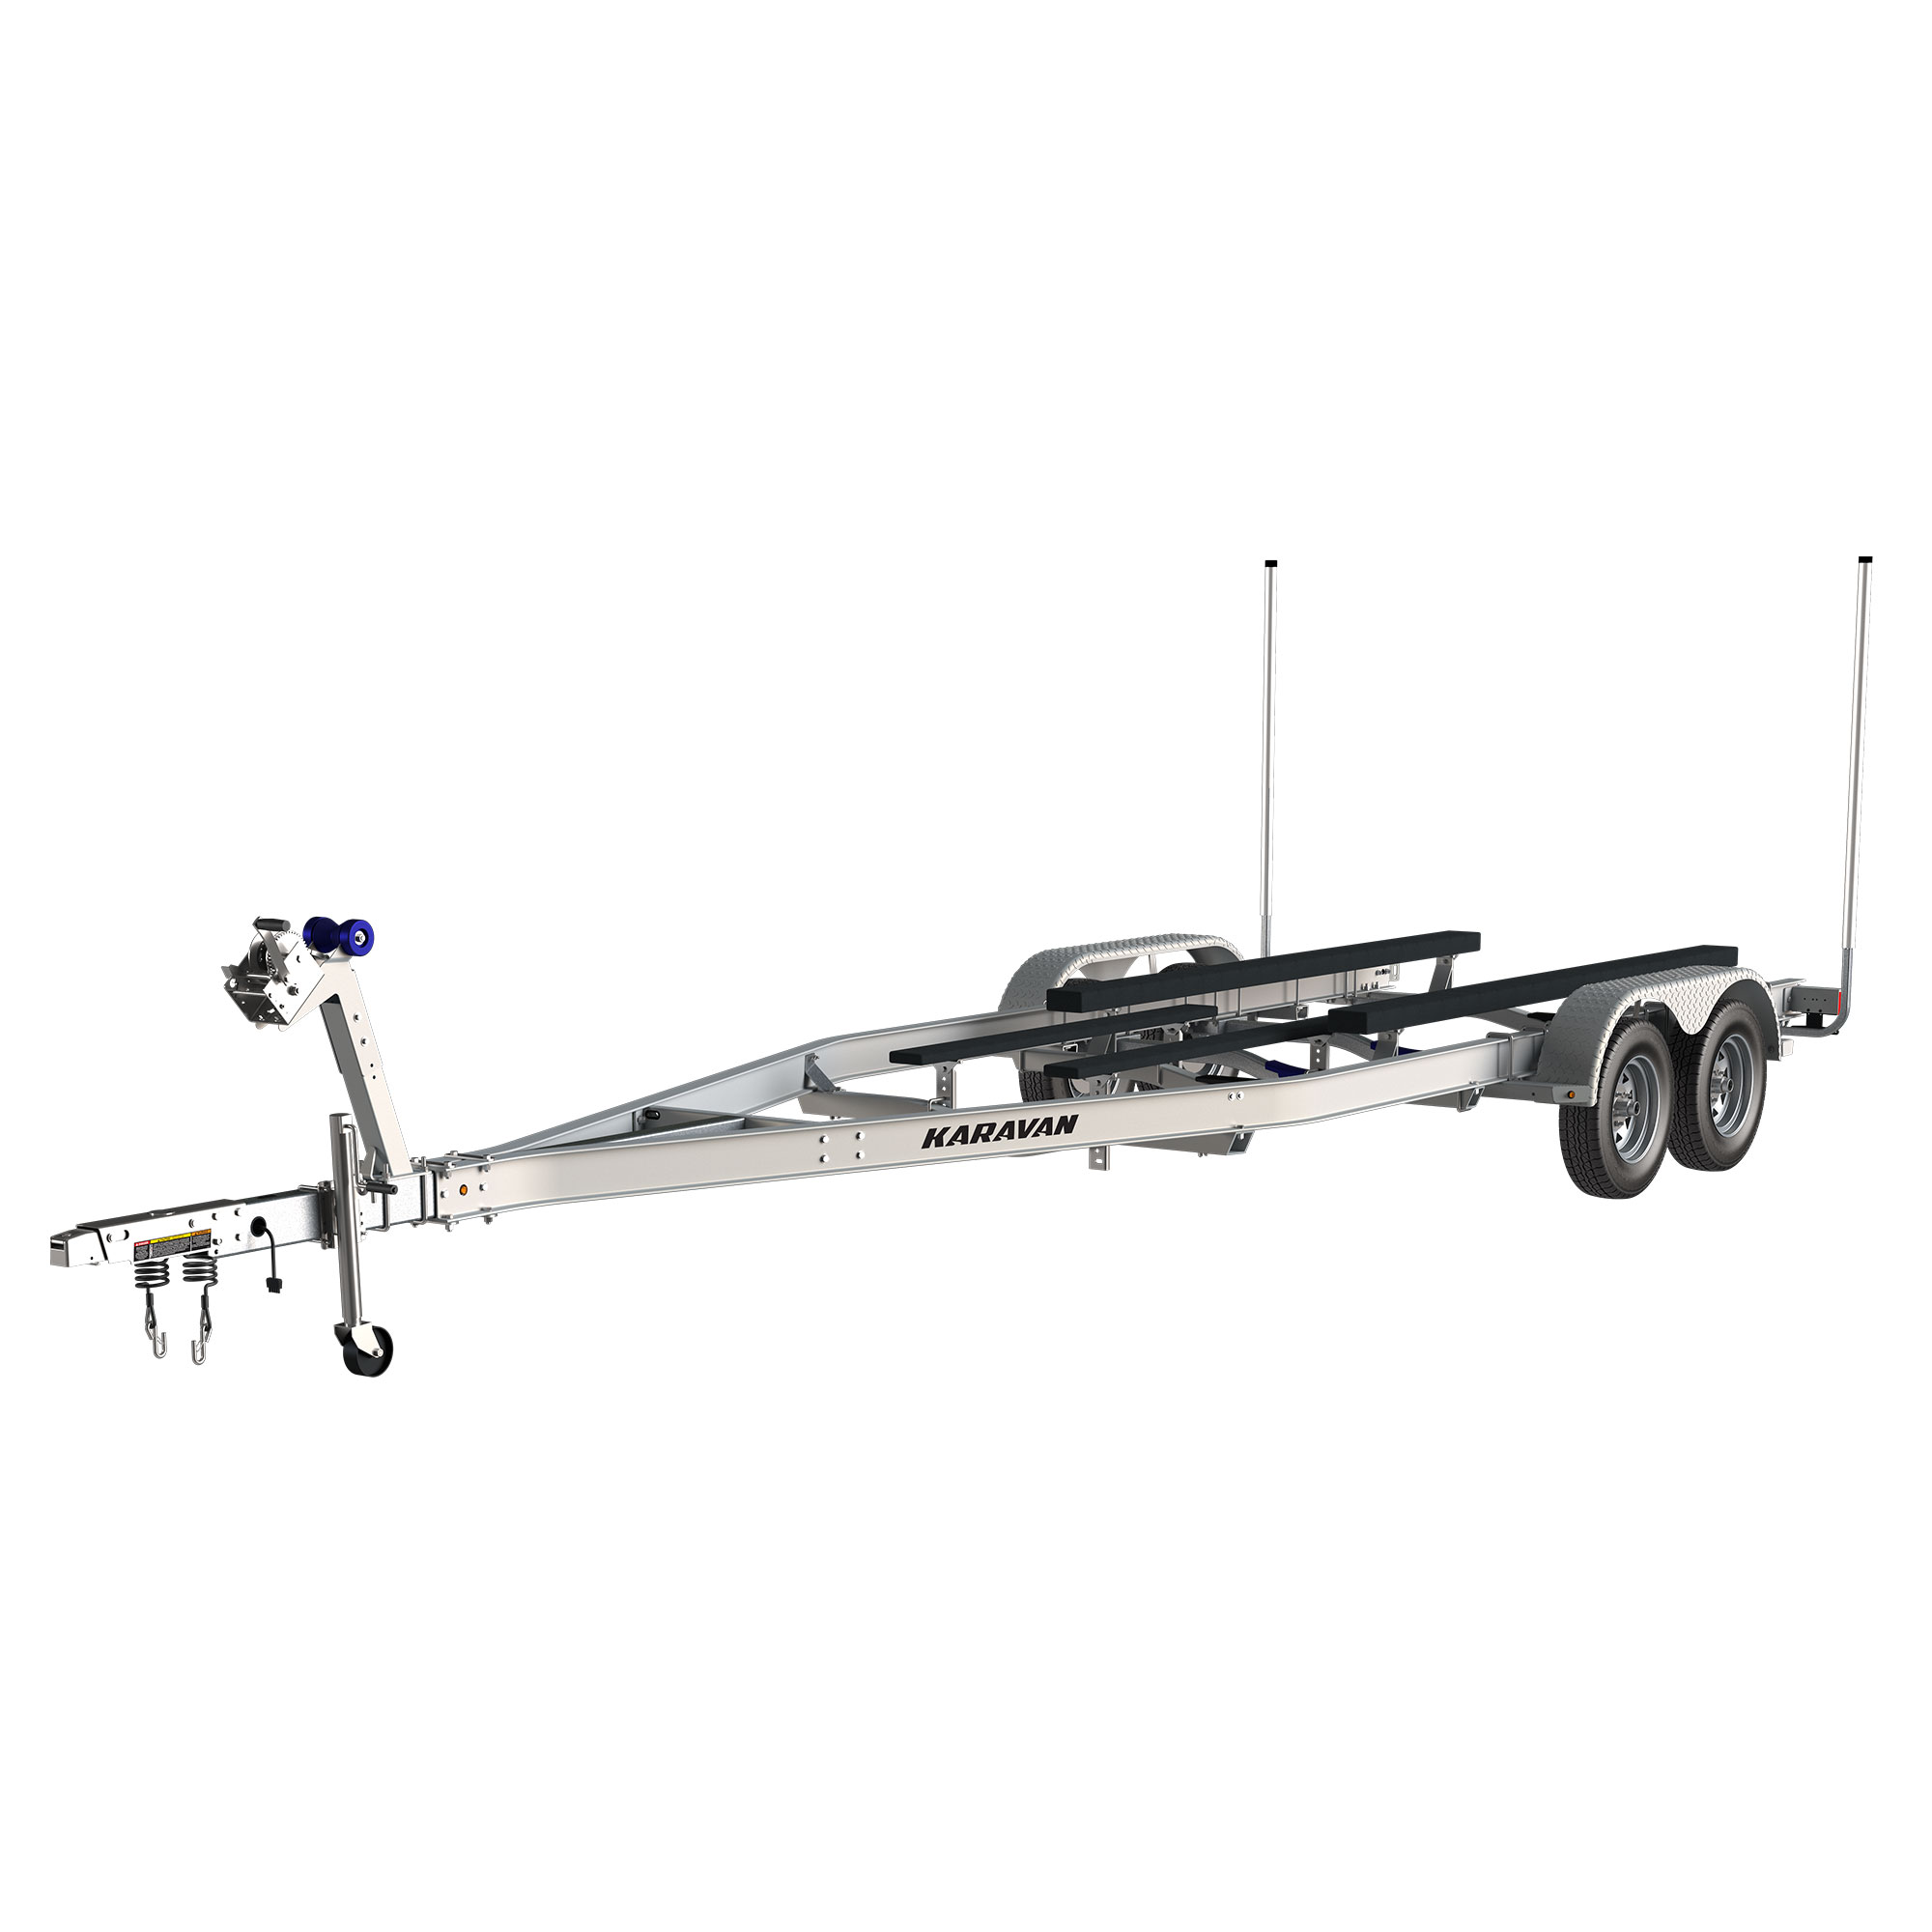 Karavan Trailer's Tandem Axel Aluminum 5800# Bunk Trailer, model number SLT-5800-78